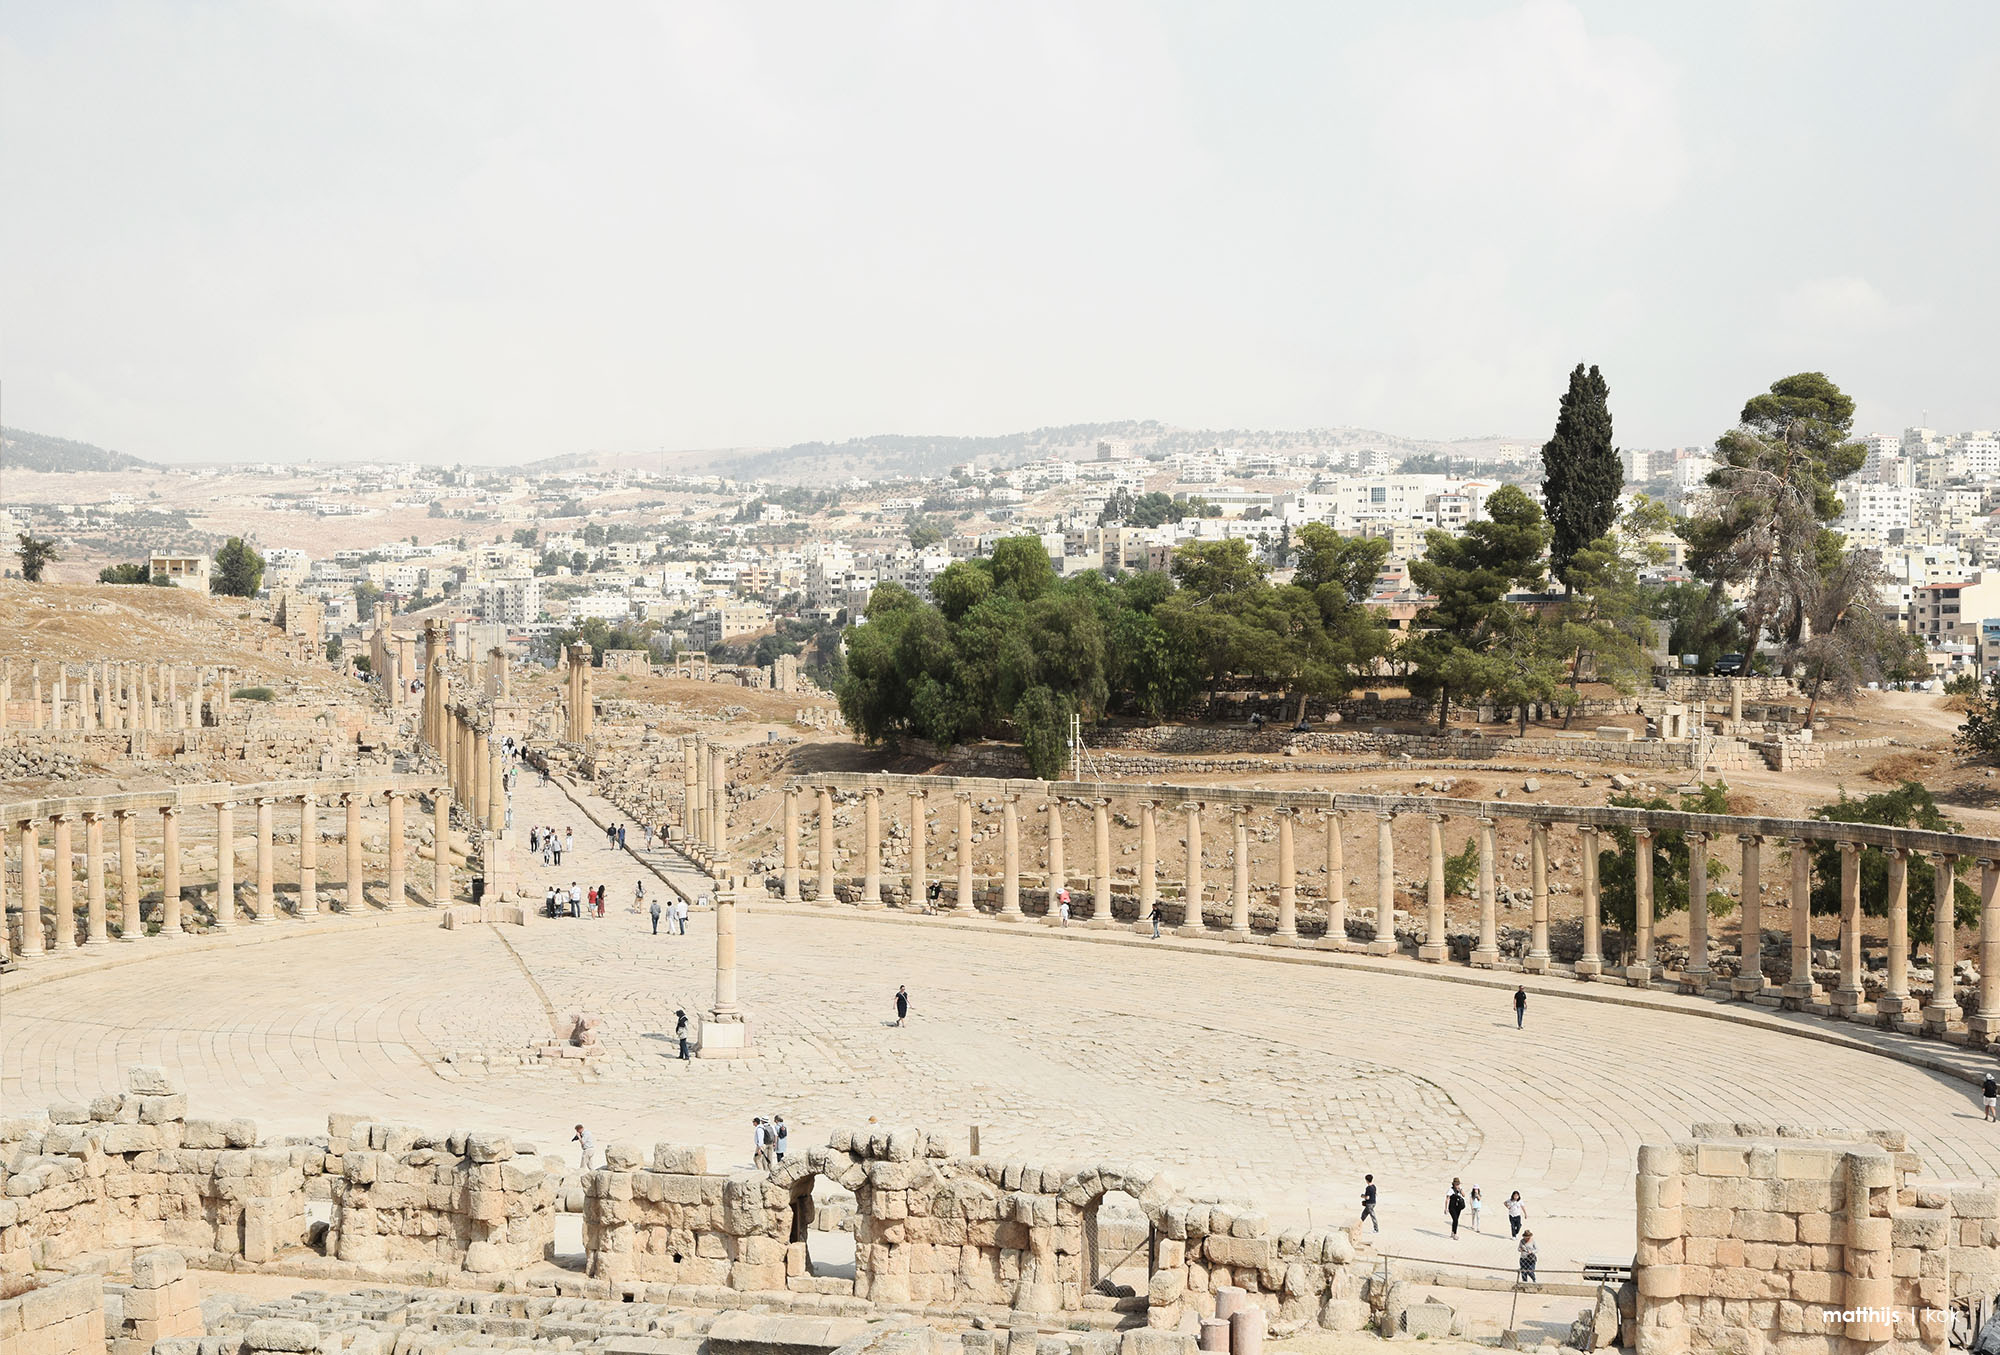 The Ancient City of Jerash, Jordan | Photo by Matthijs Kok